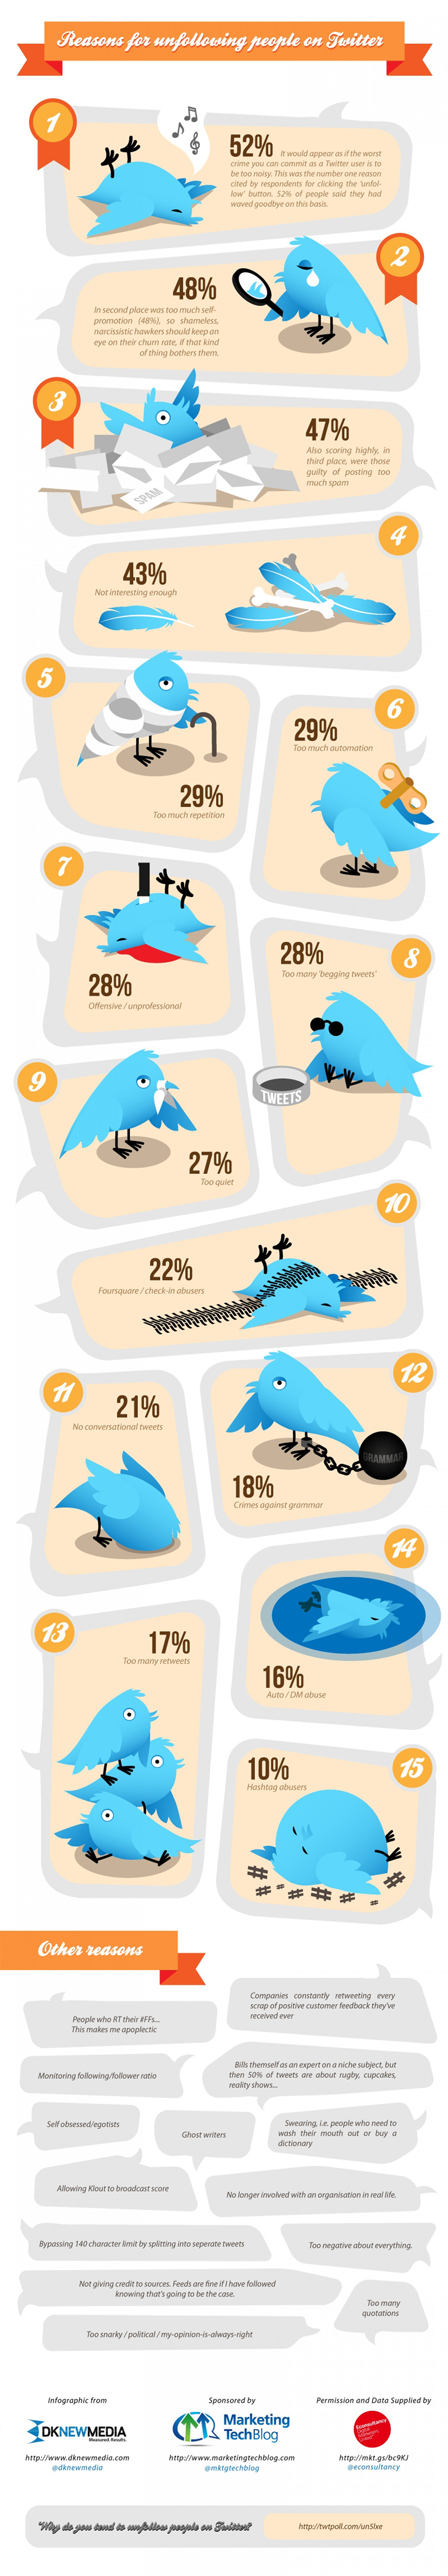 Why people unfollow users on Twitter infographic